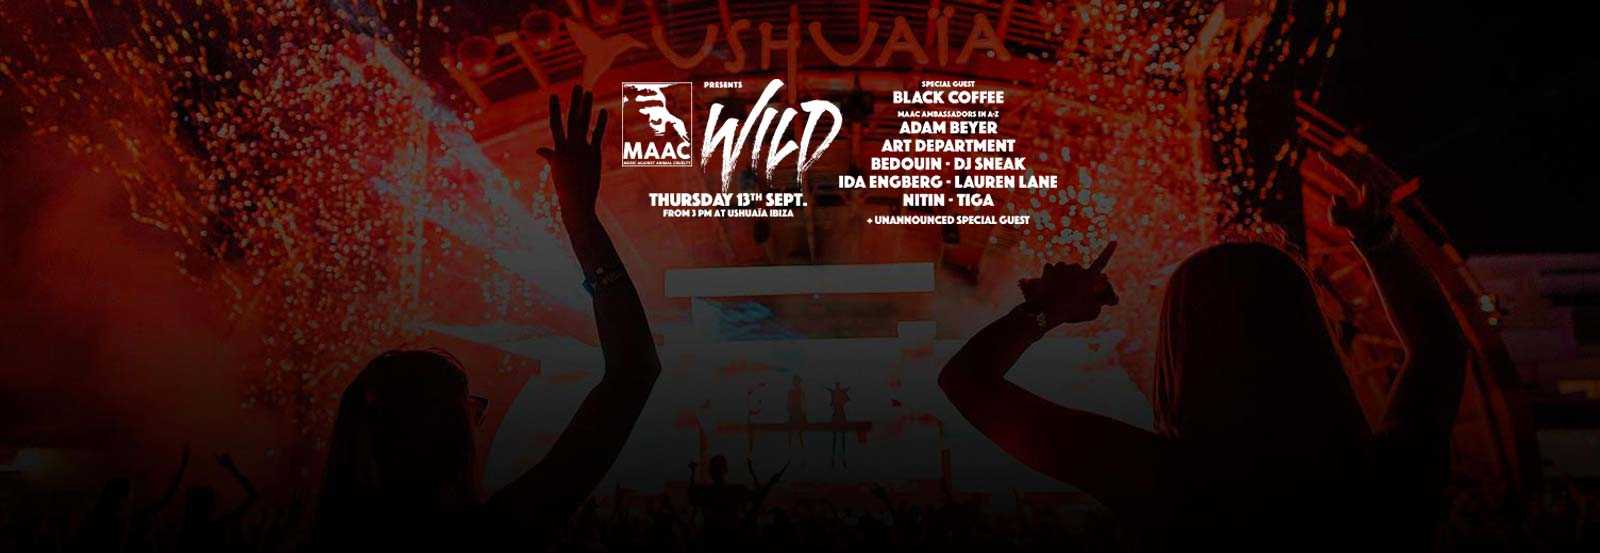 Wild, the most beneficial event of the season at Ushuaïa Ibiza